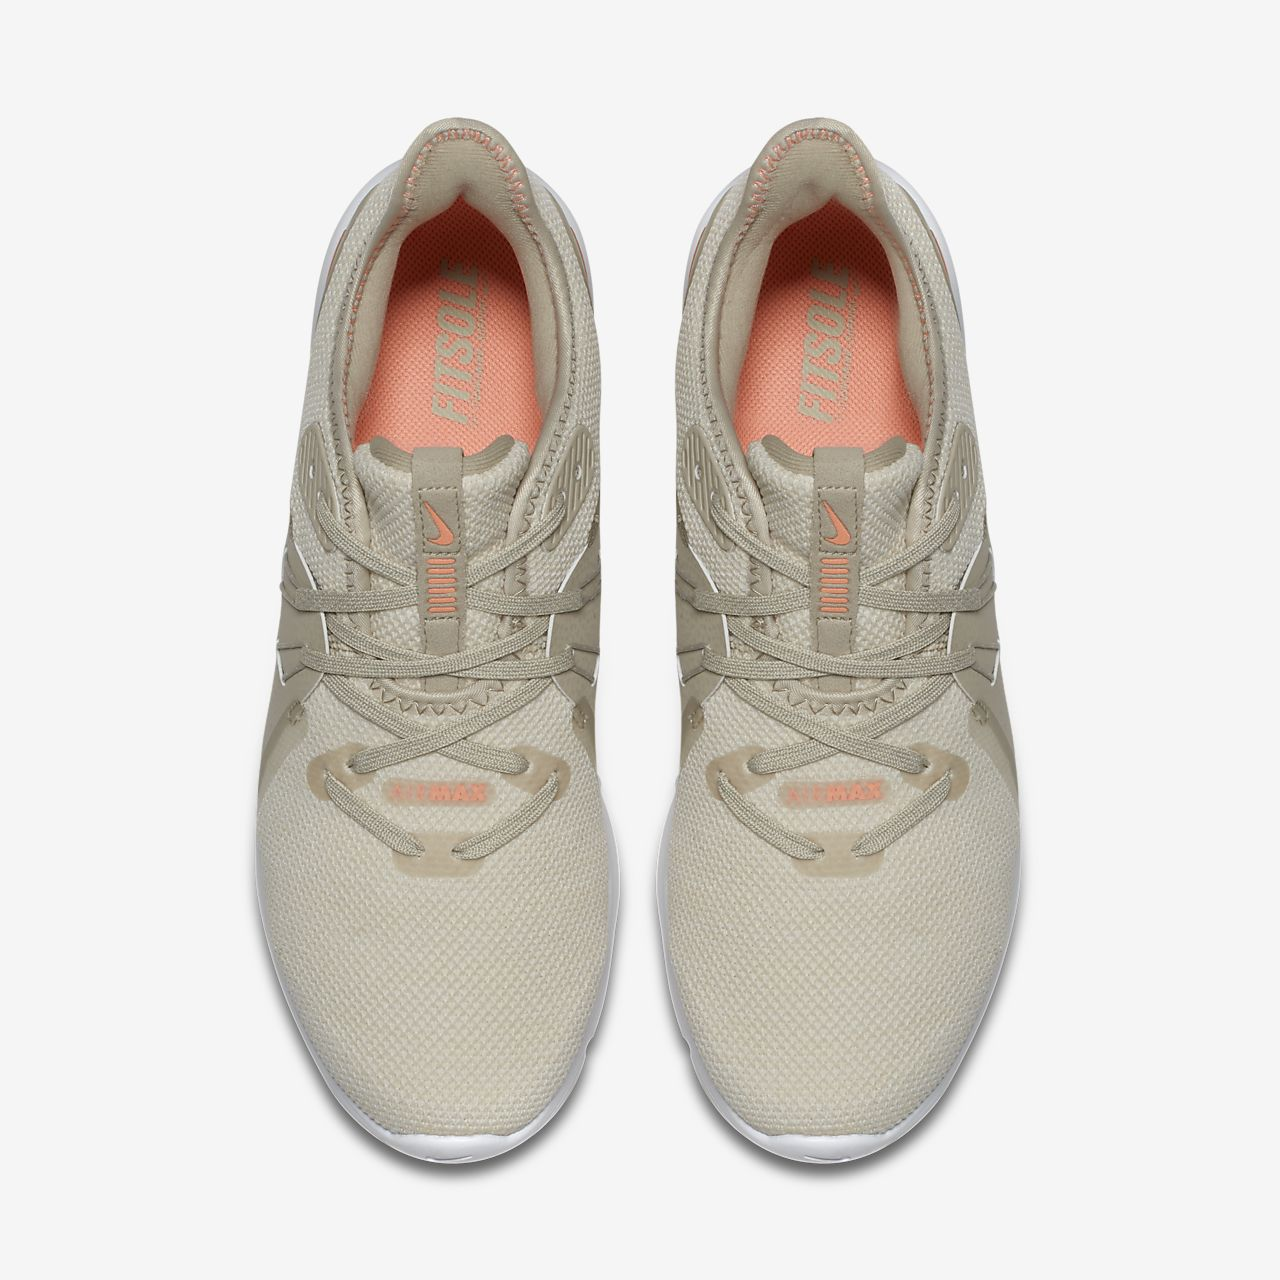 Nike Max Sequent Wmns 3Chaussures Air gvf6bY7y